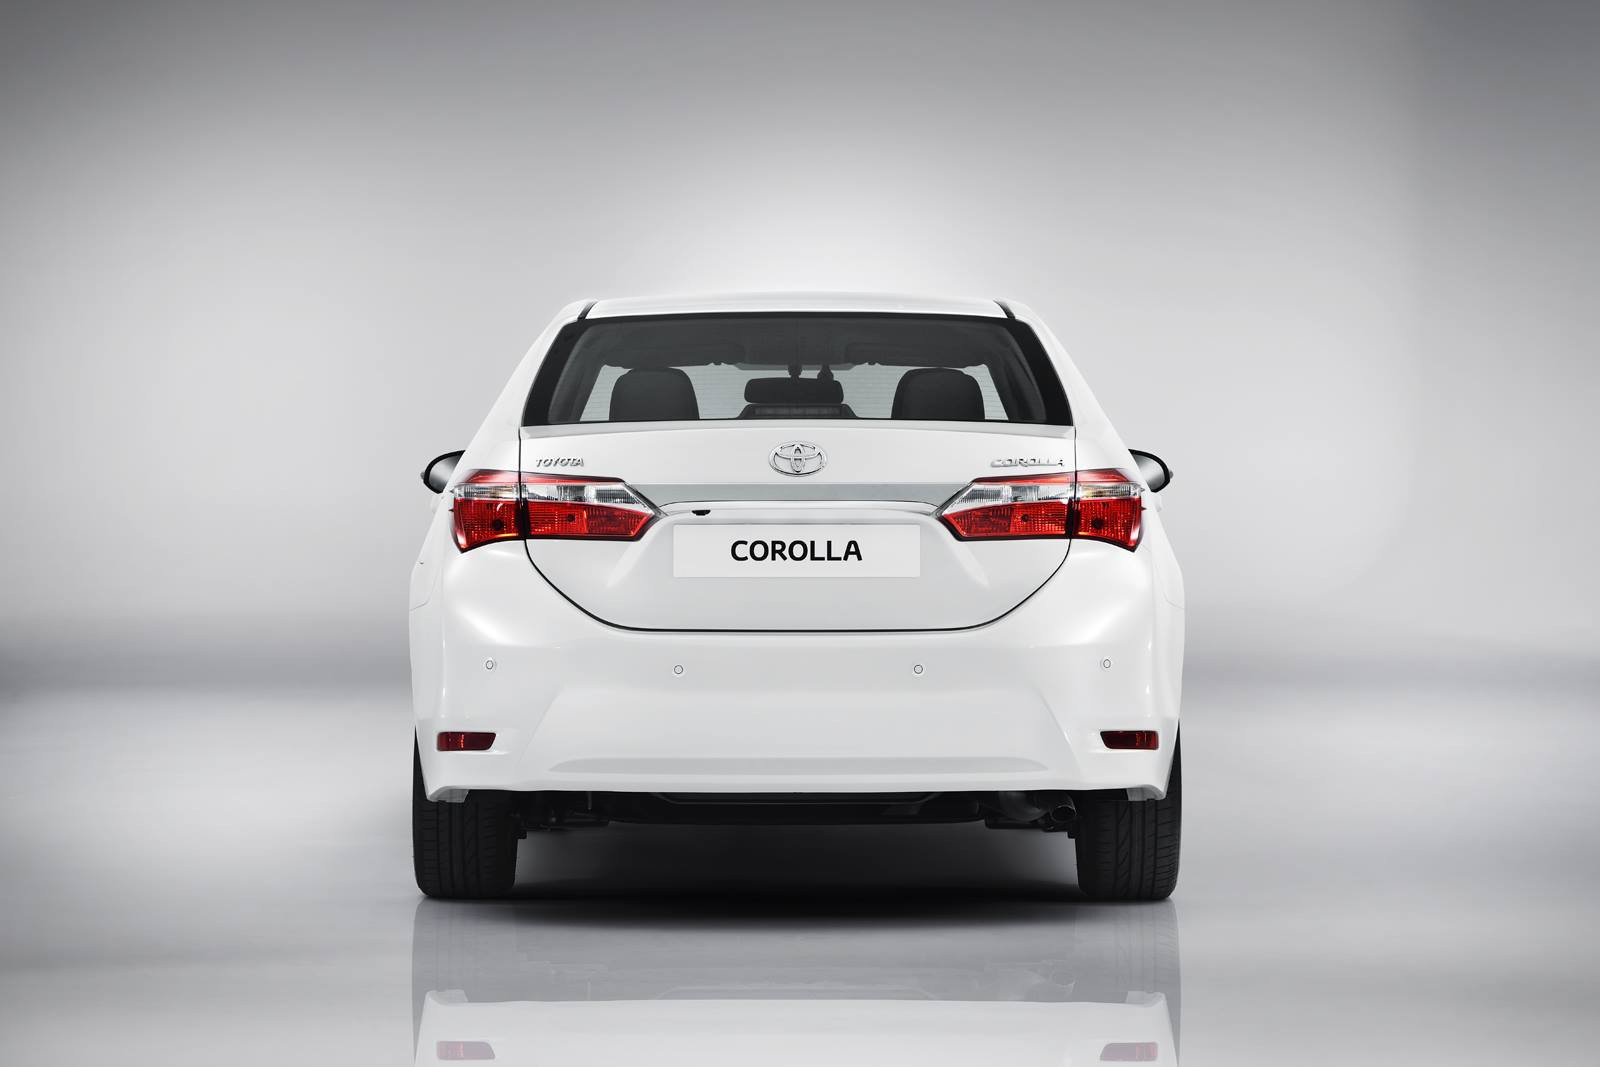 2014 Toyota Corolla Europe Version Unveiled - Photo Gallery